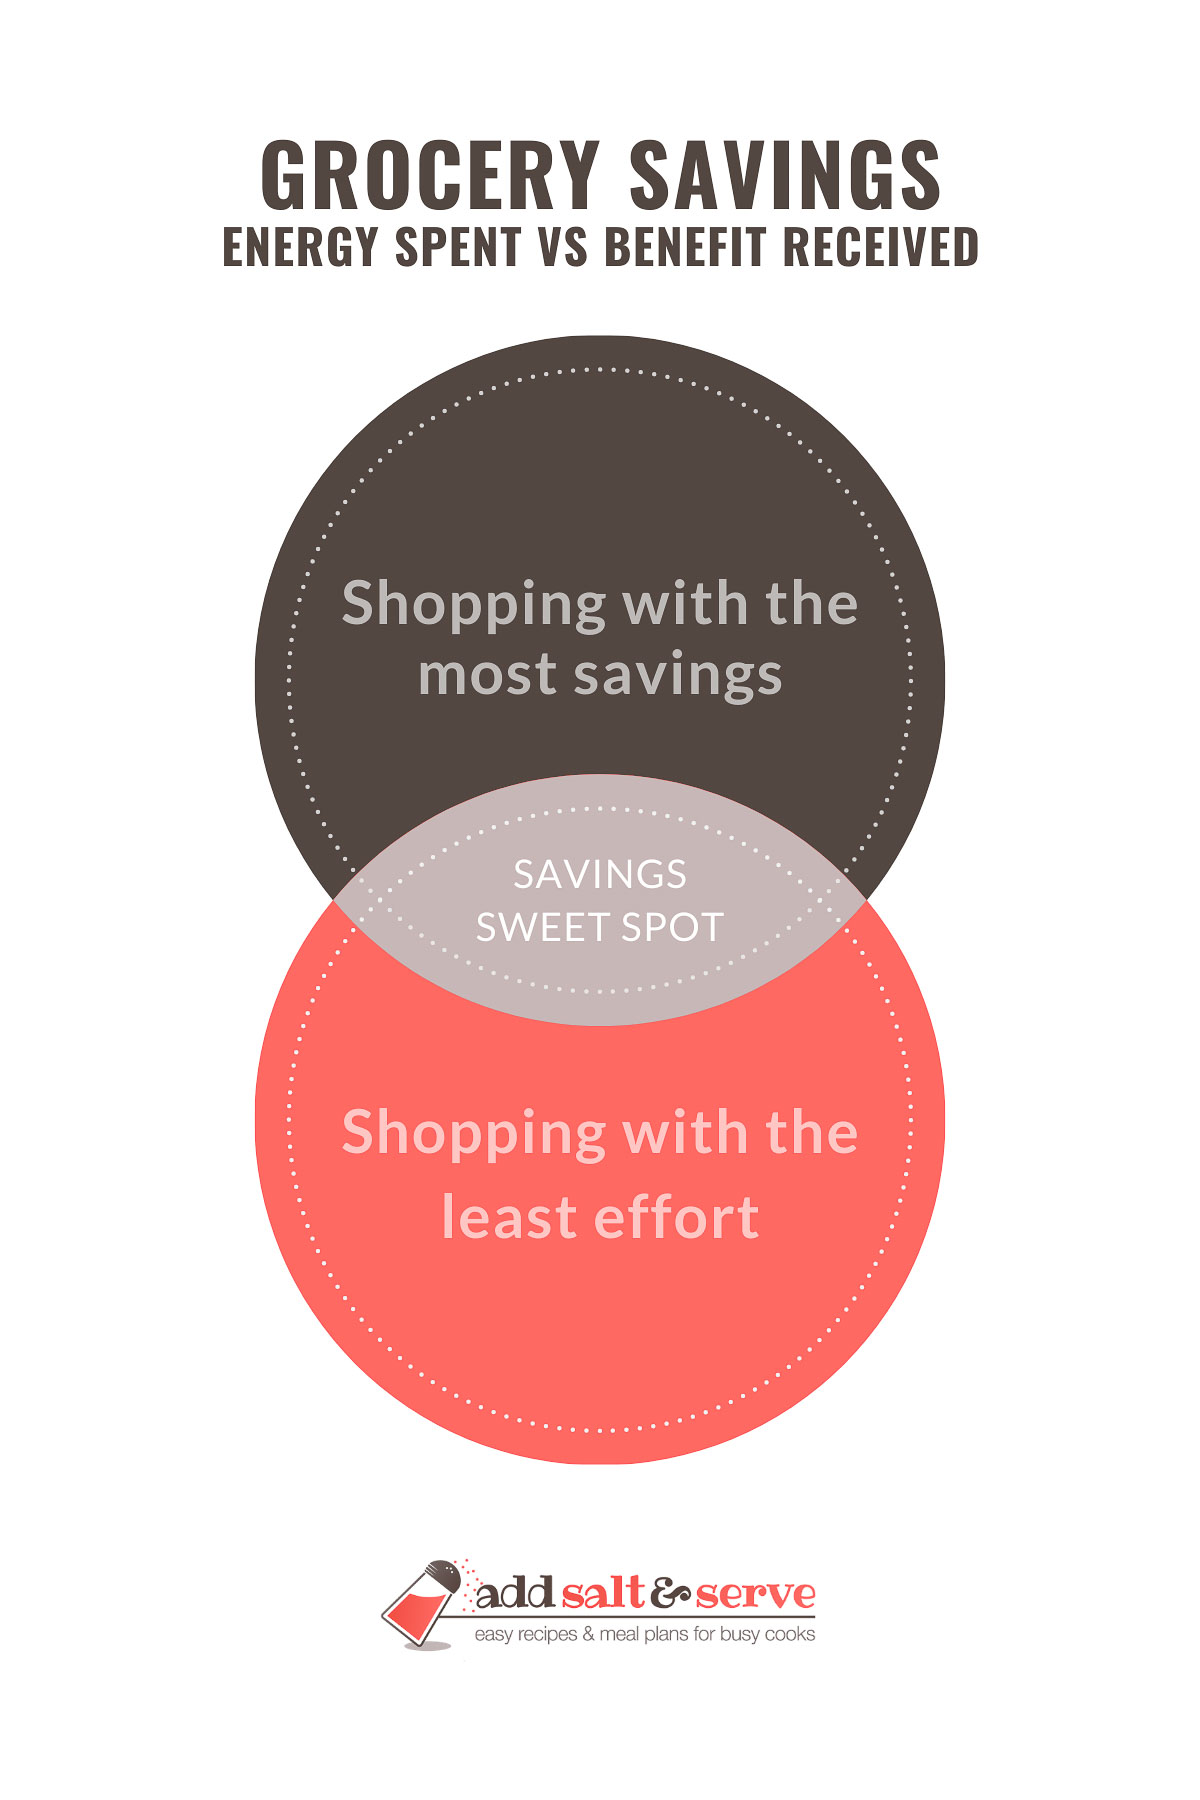 Grocery Savings: Energy Spent vs. Benefit Received; Venn diagram with Shopping with the most savings and Shopping with the least effort in circles and savings sweet spot at the intersection; text: Grocery Savings